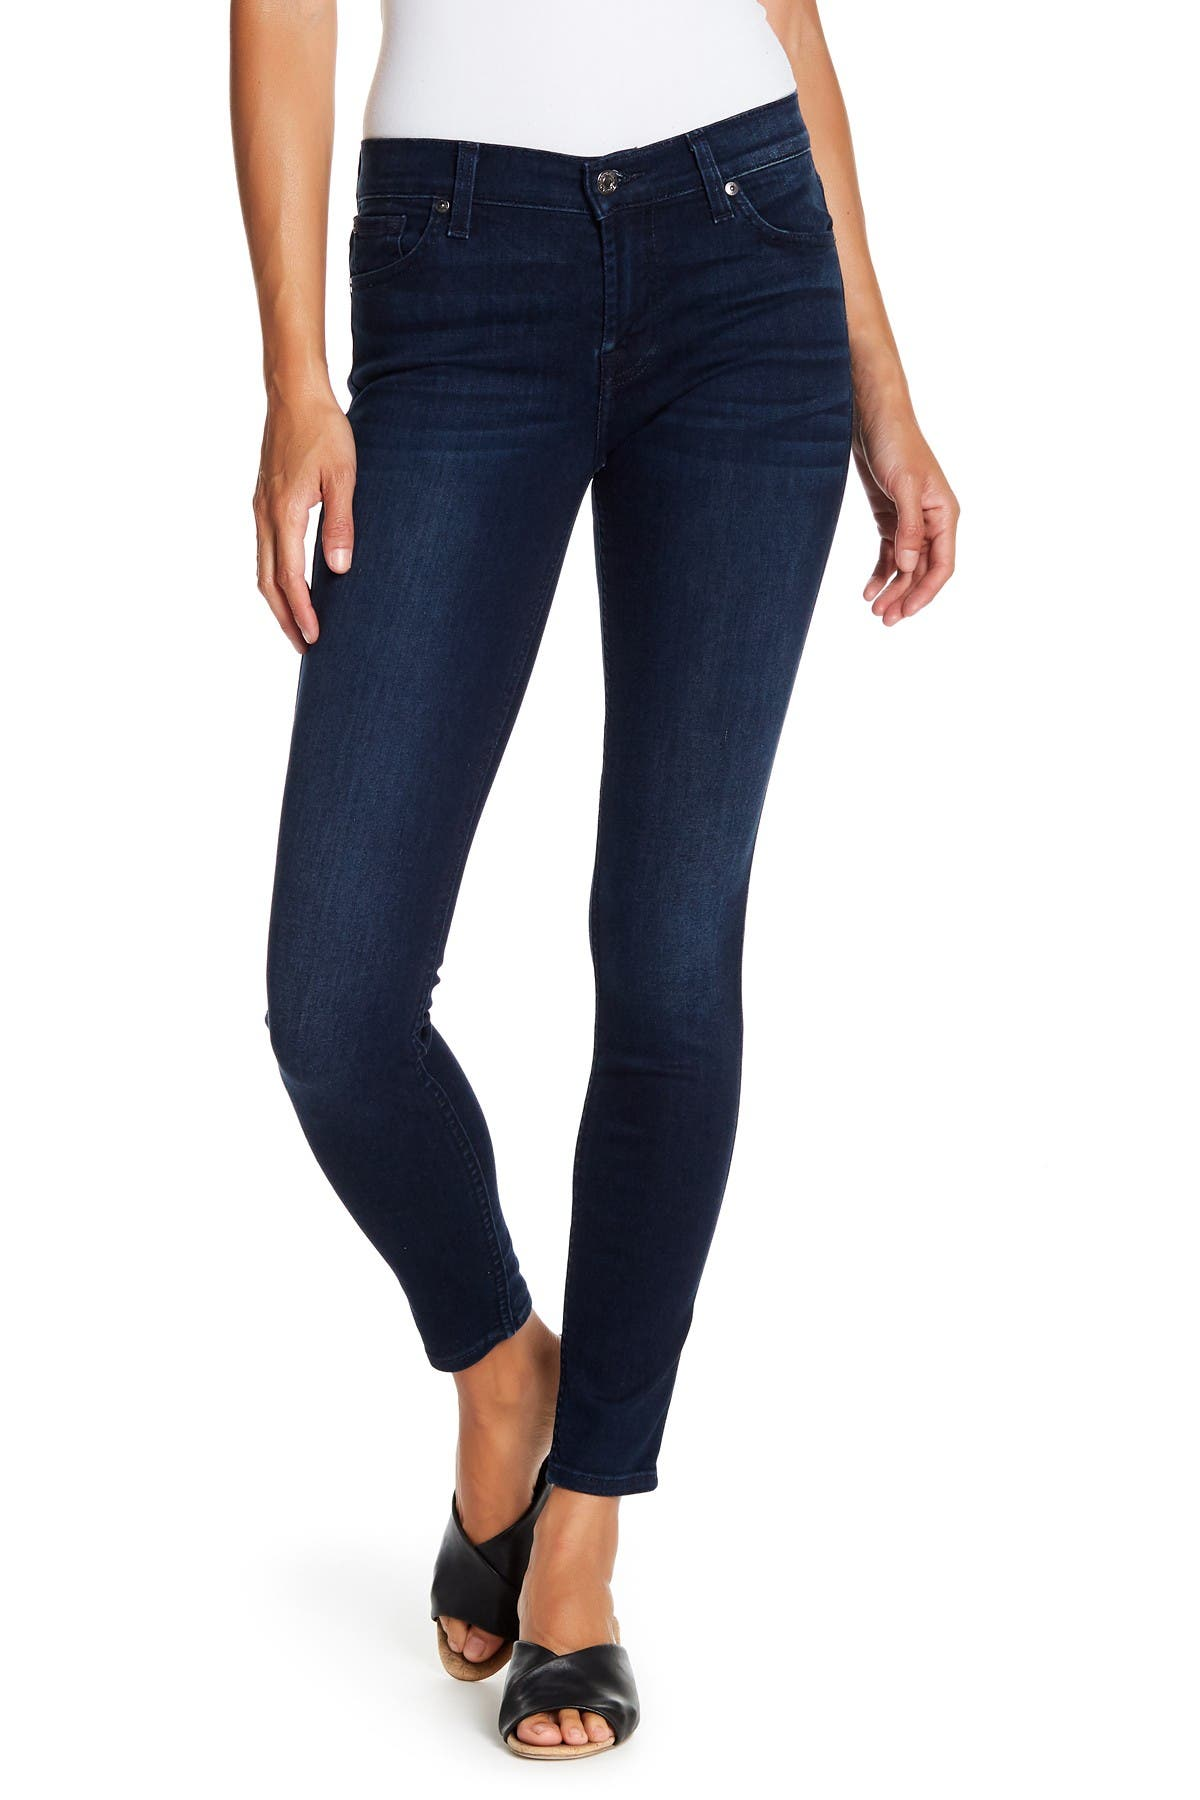 7 For All Mankind Womens Gwenevere Ankle Skinny Mid Rise Jean